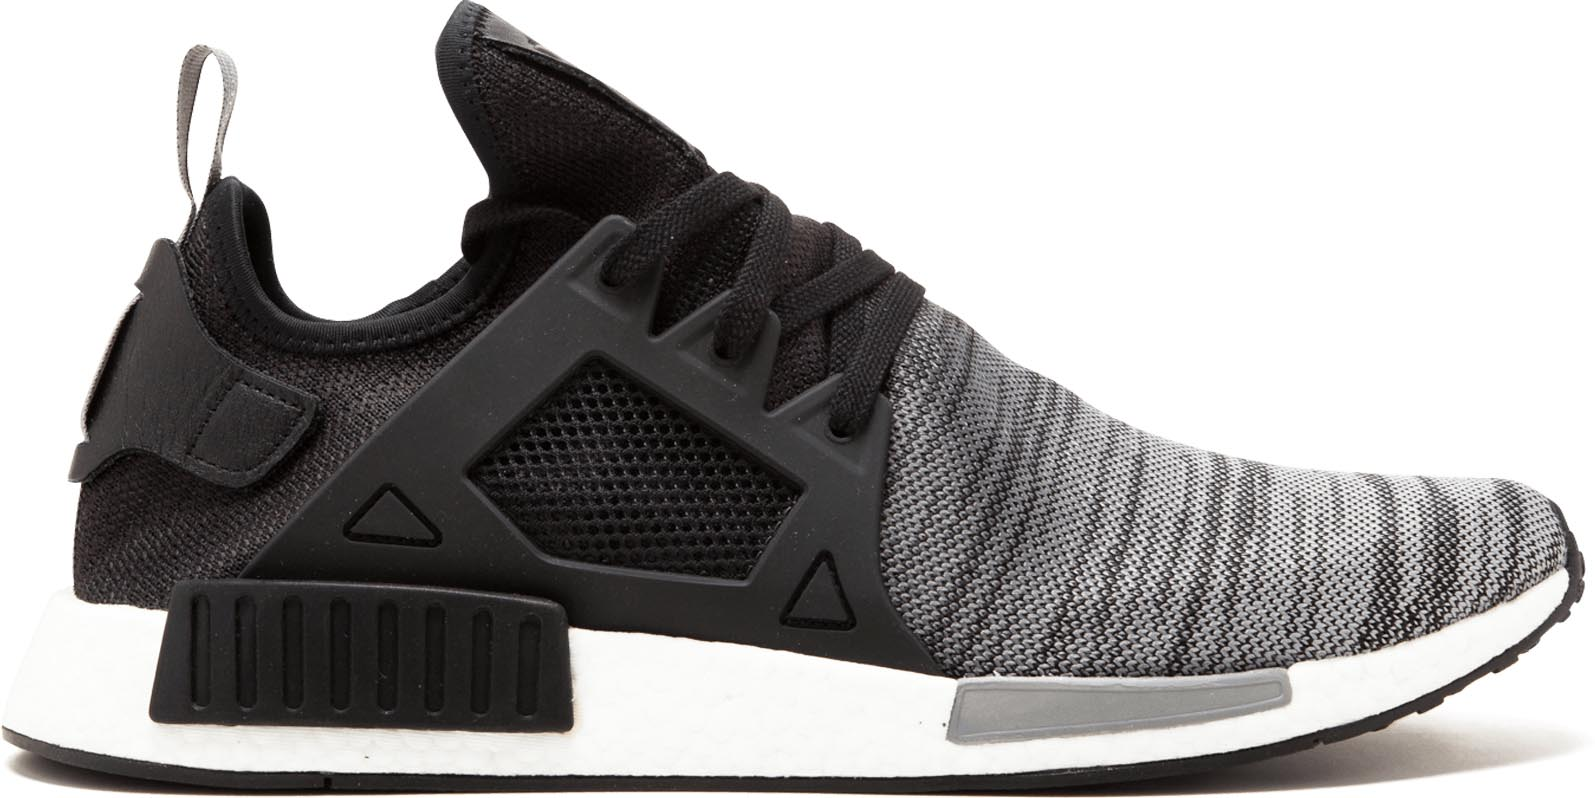 adidas NMD XR1 Black Gradient